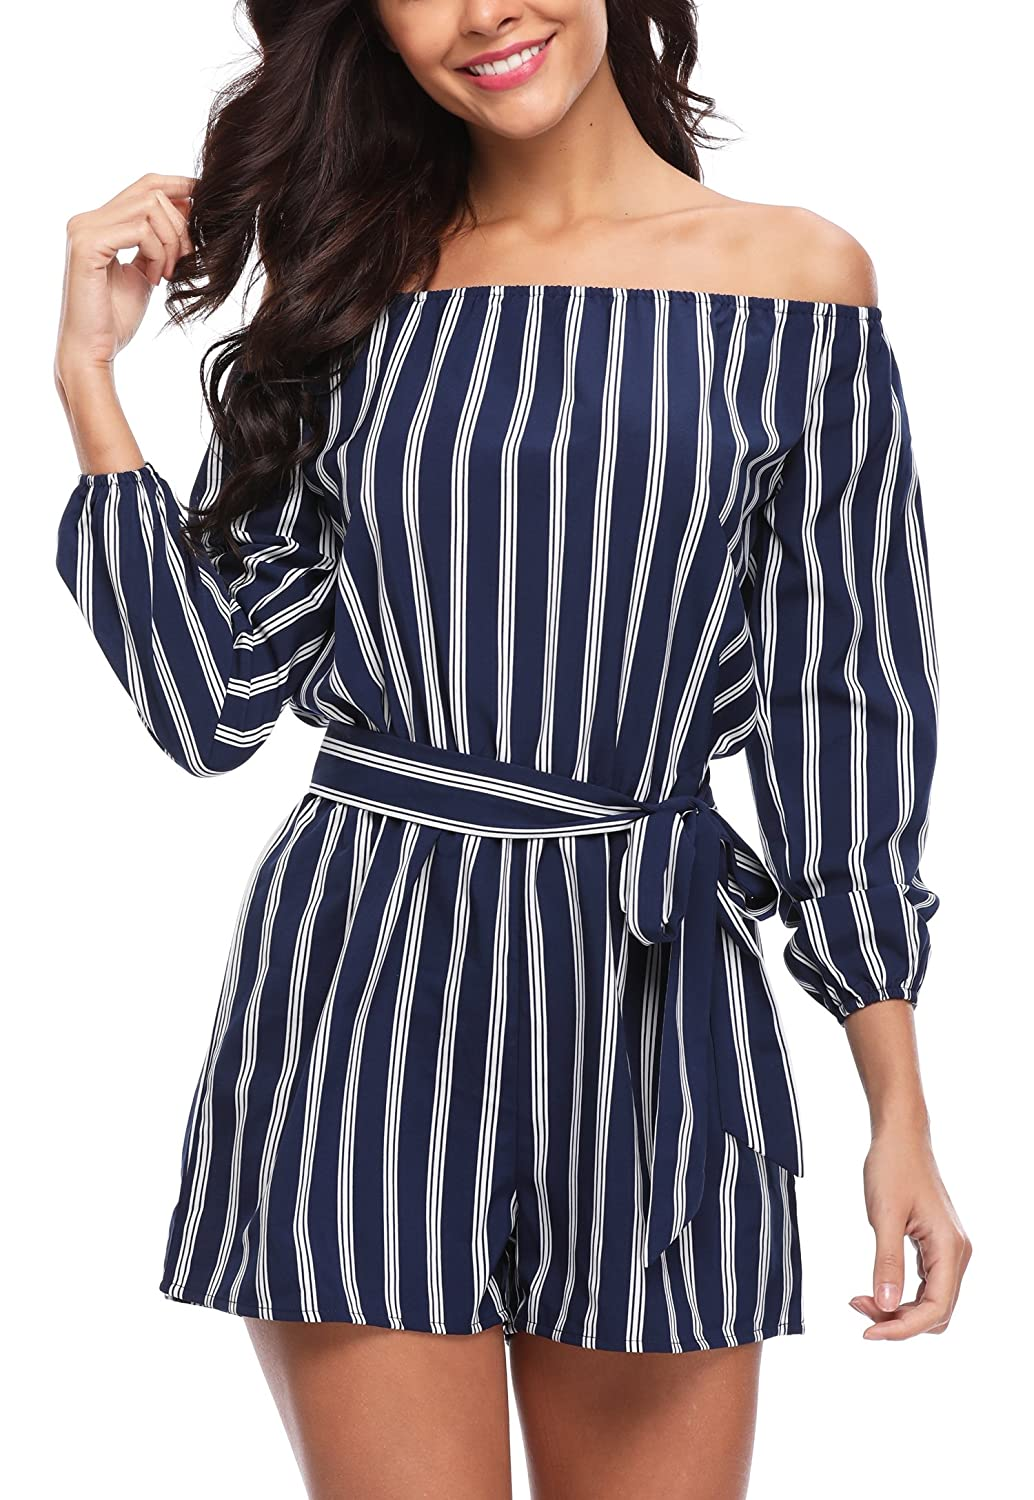 f9e84755ae2 Amazon.com: MISS MOLY Jumpsuits for Women Summer Rompers Elegant Off The Shoulder  Striped 3/4 Sleeves Cute Playsuits Tops Shirts Blouse: Clothing